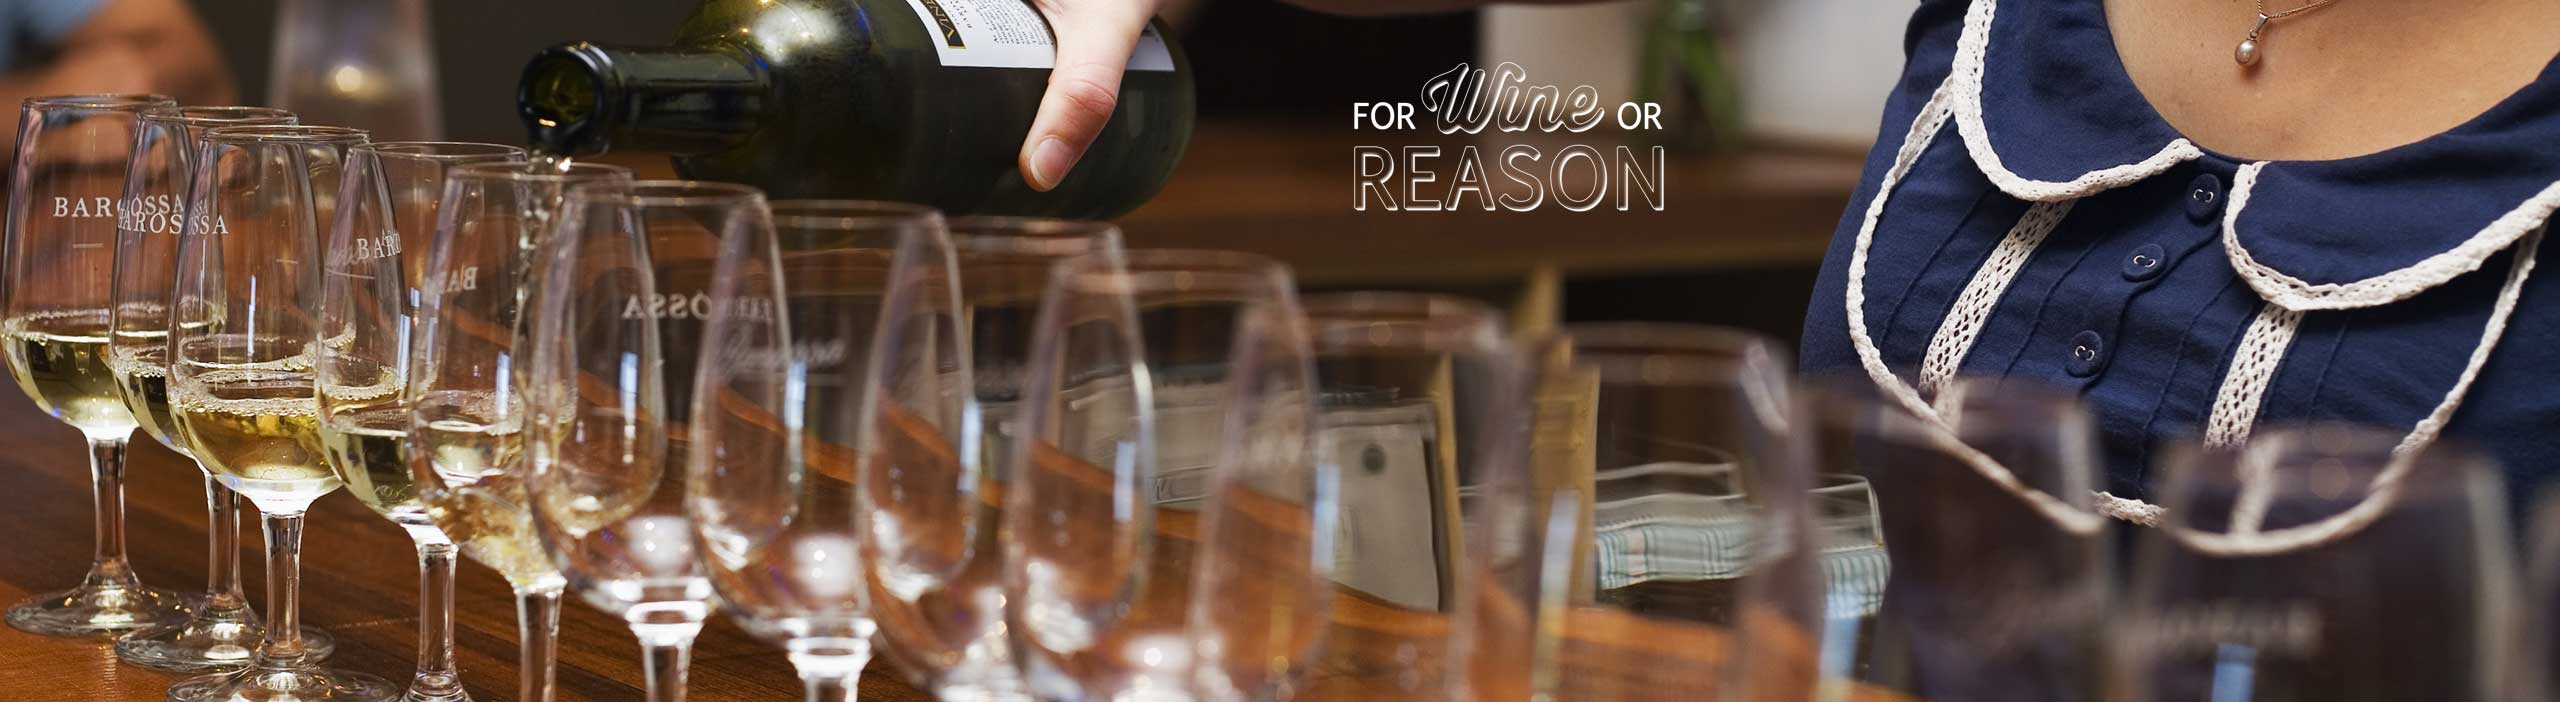 4-for-wine-or-reason